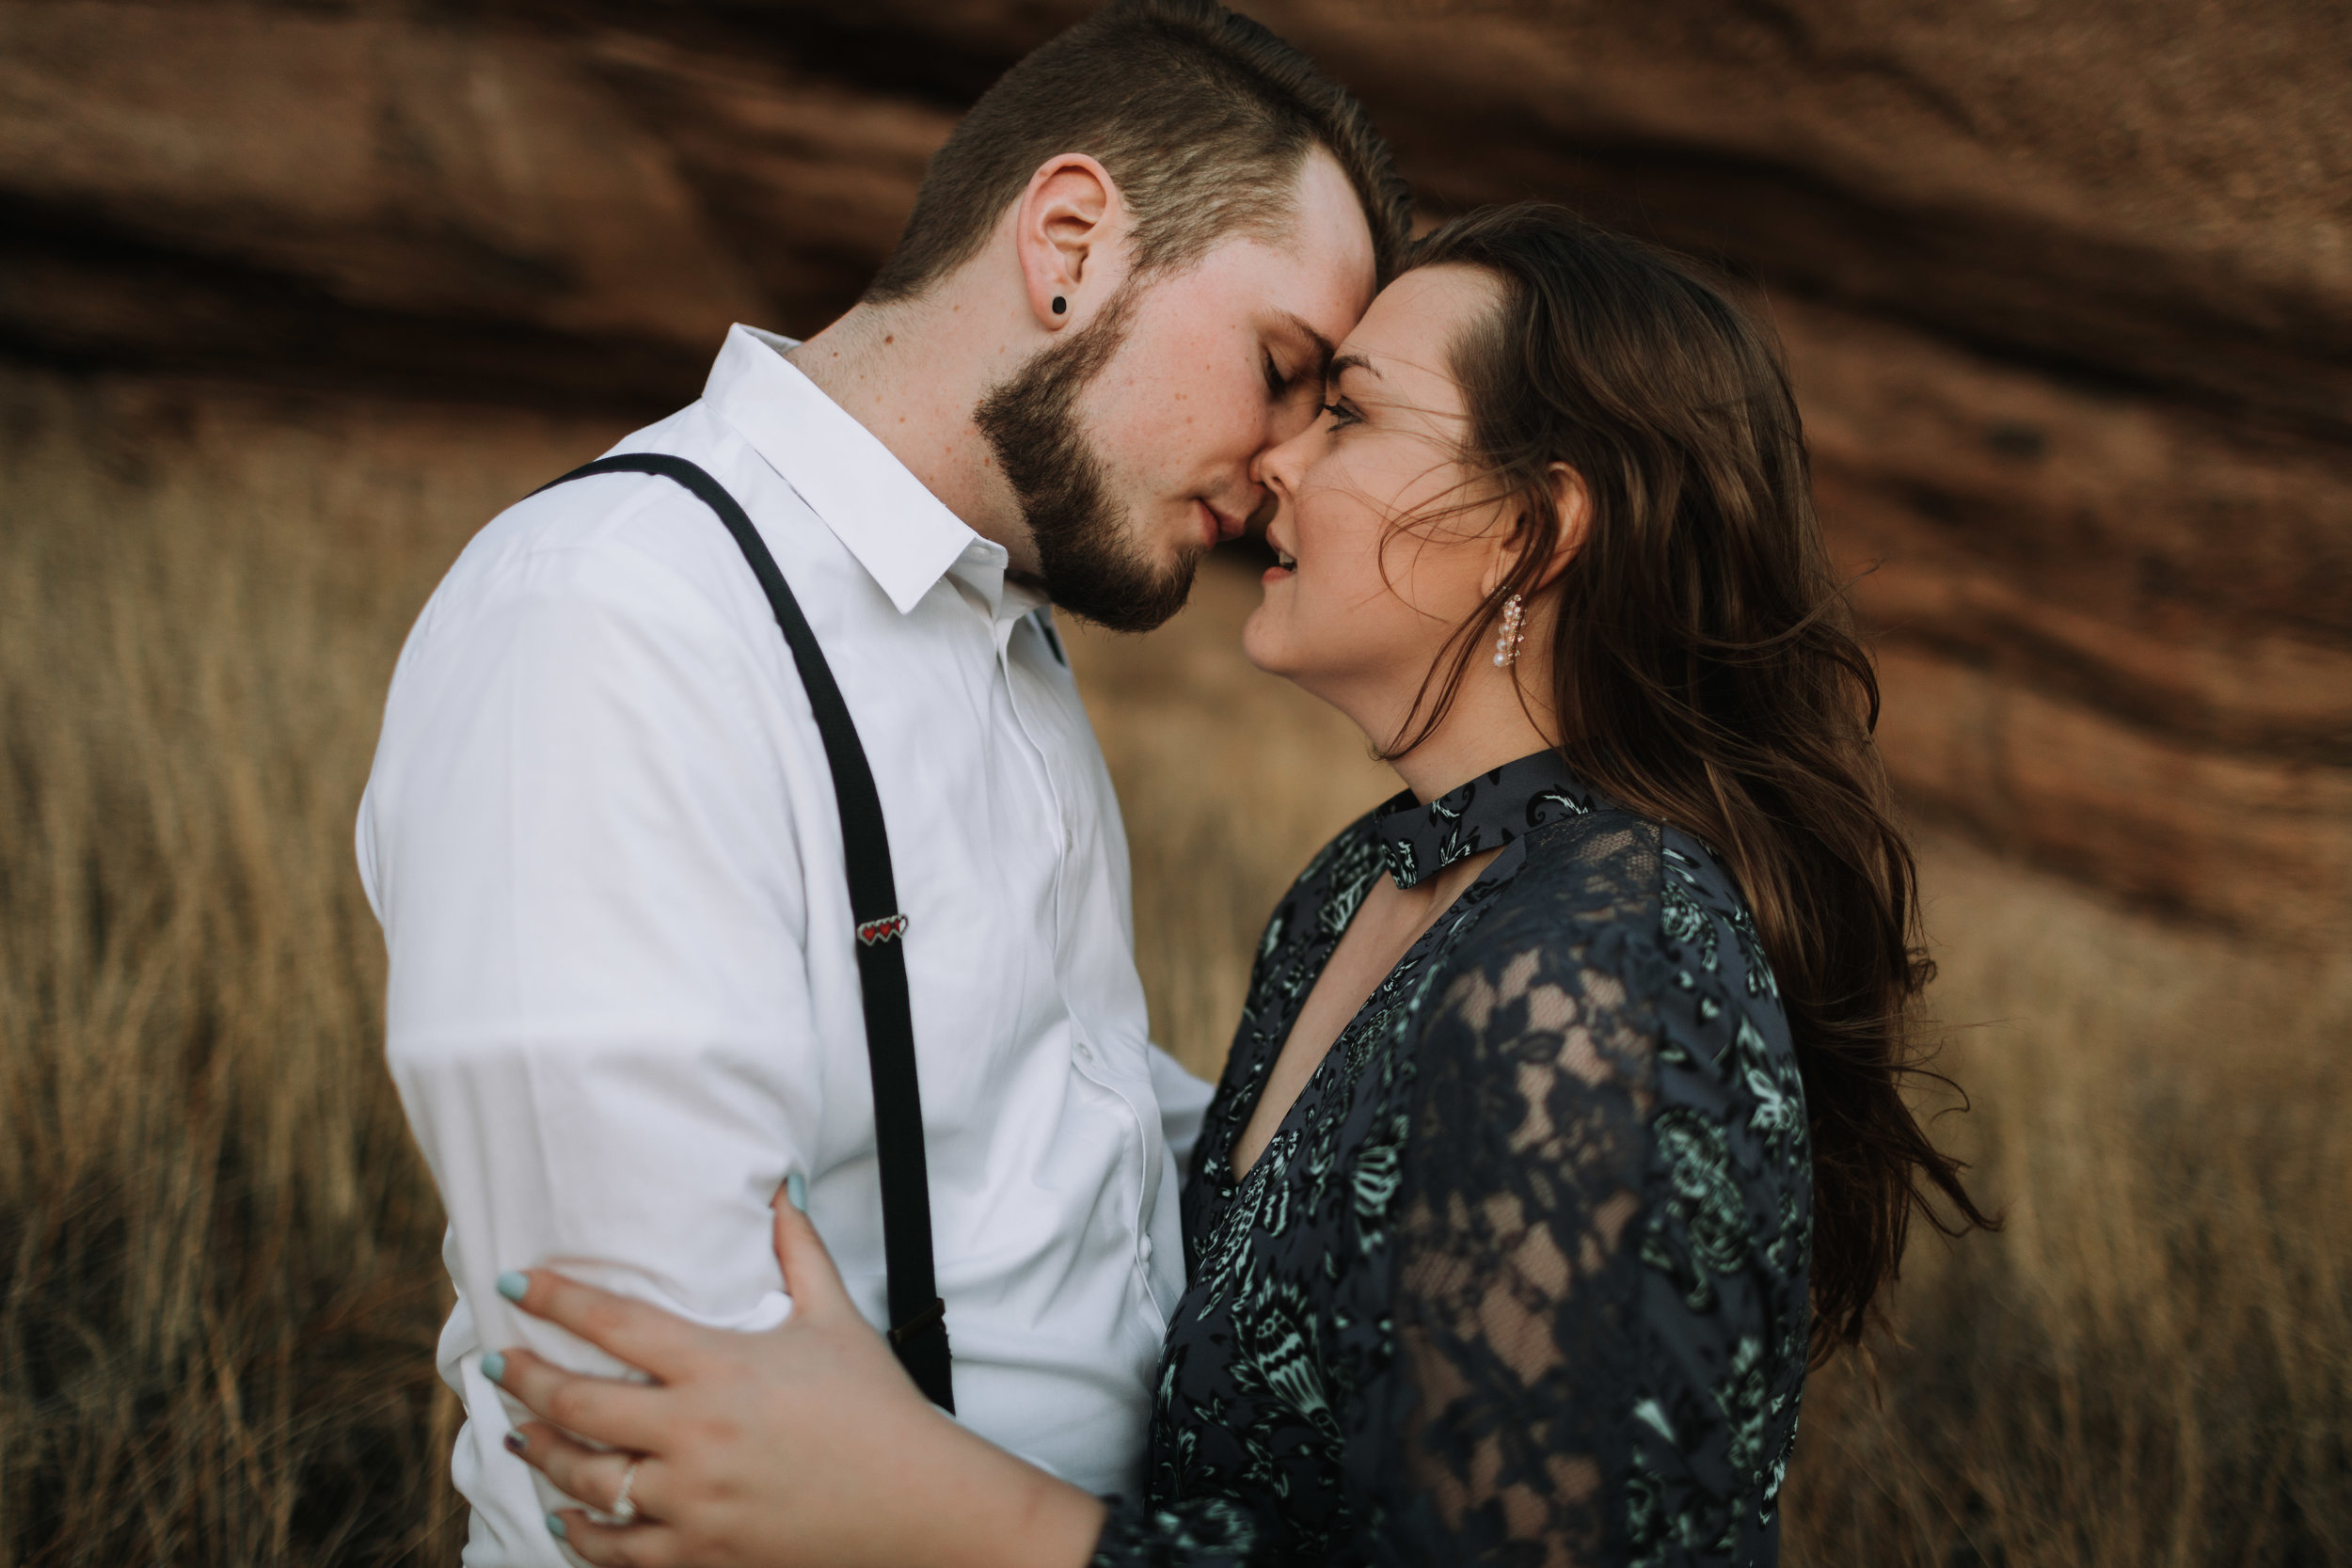 Zachary and Chelsea Engagement Shoot at Vasquez Rocks in California